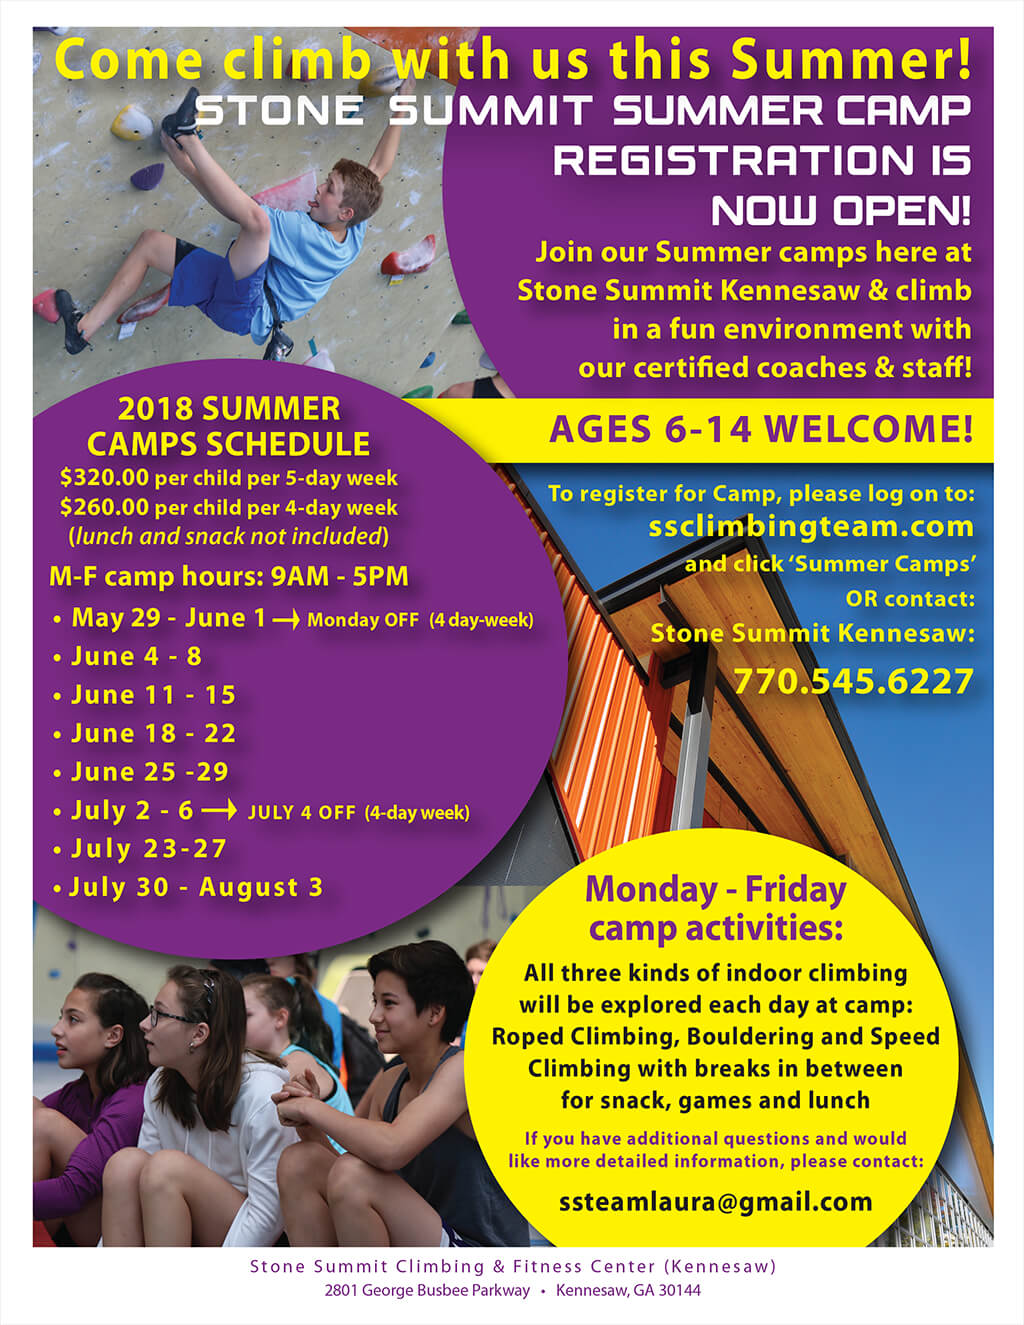 Stone Summit Summer Camp - kennesaw